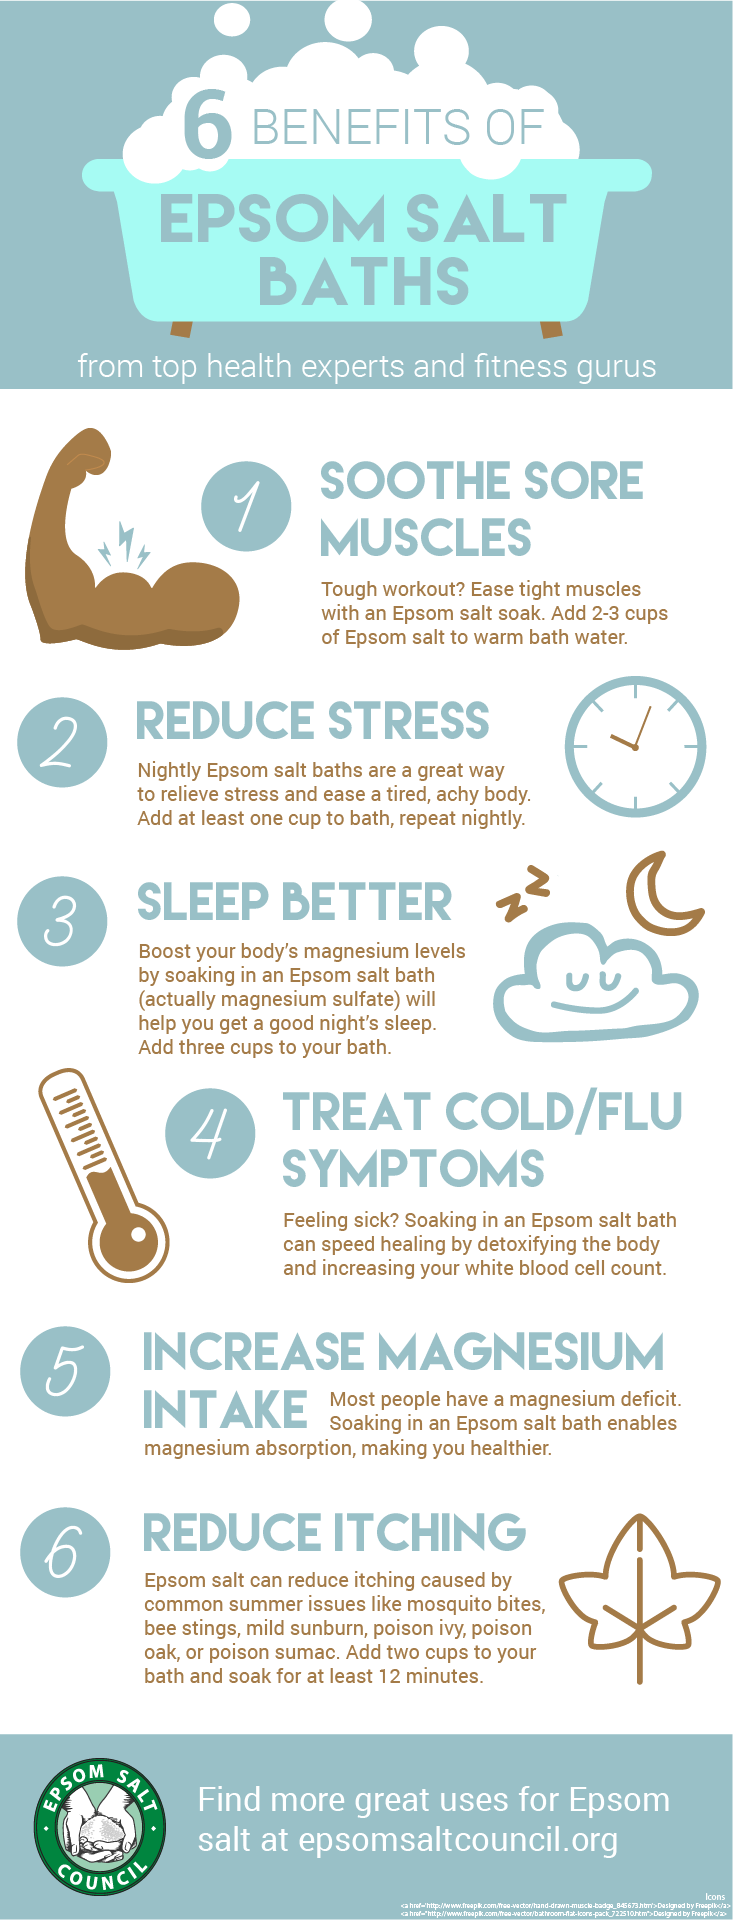 Epsom Salt Baths Have Tons Of Great Benefits For Your Health Find More At Epsomsaltcouncil Org